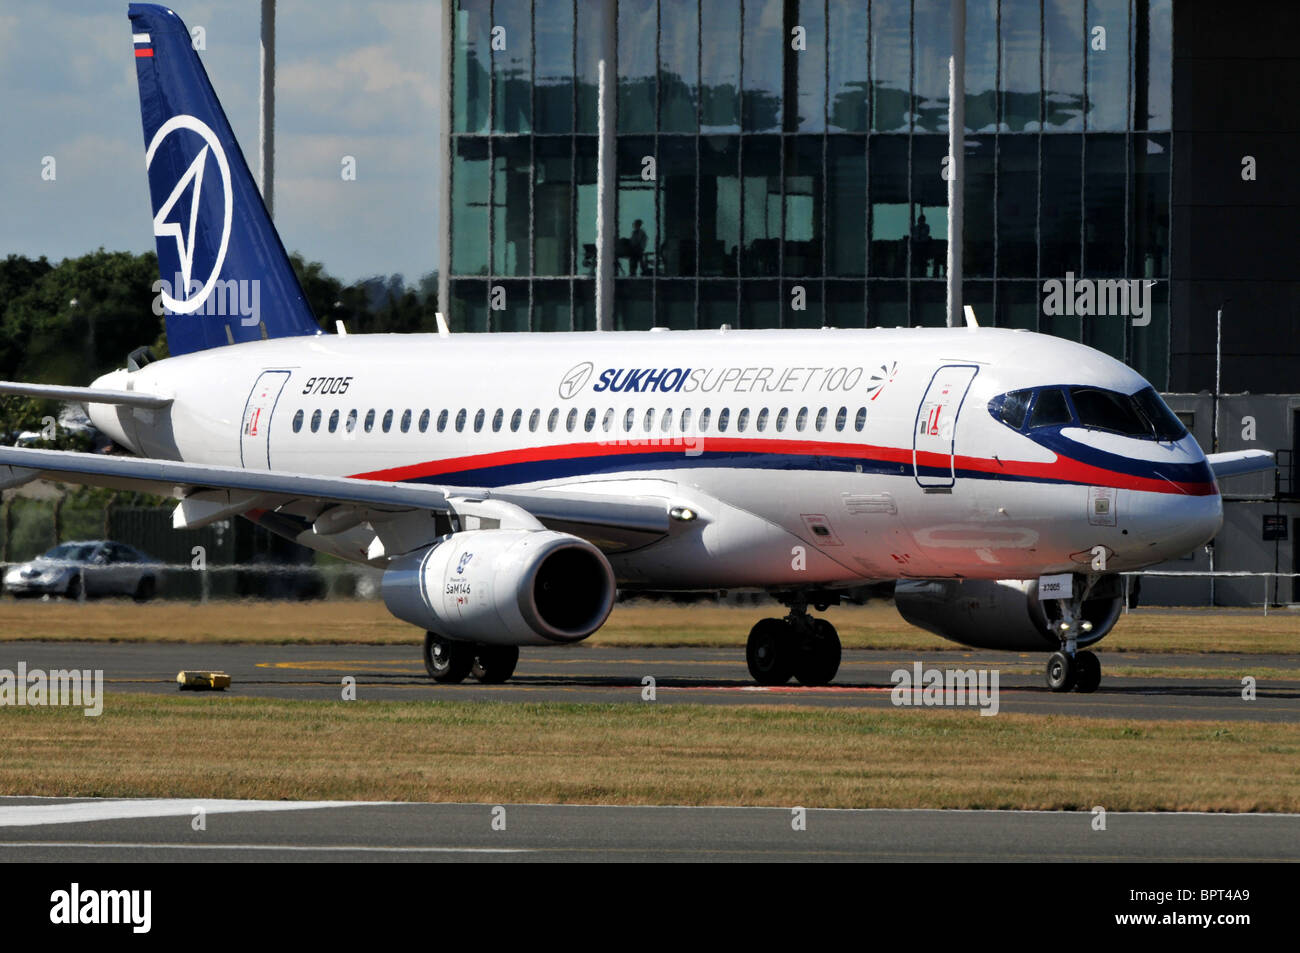 Sukhoi Superjet 100-95 - Stock Image